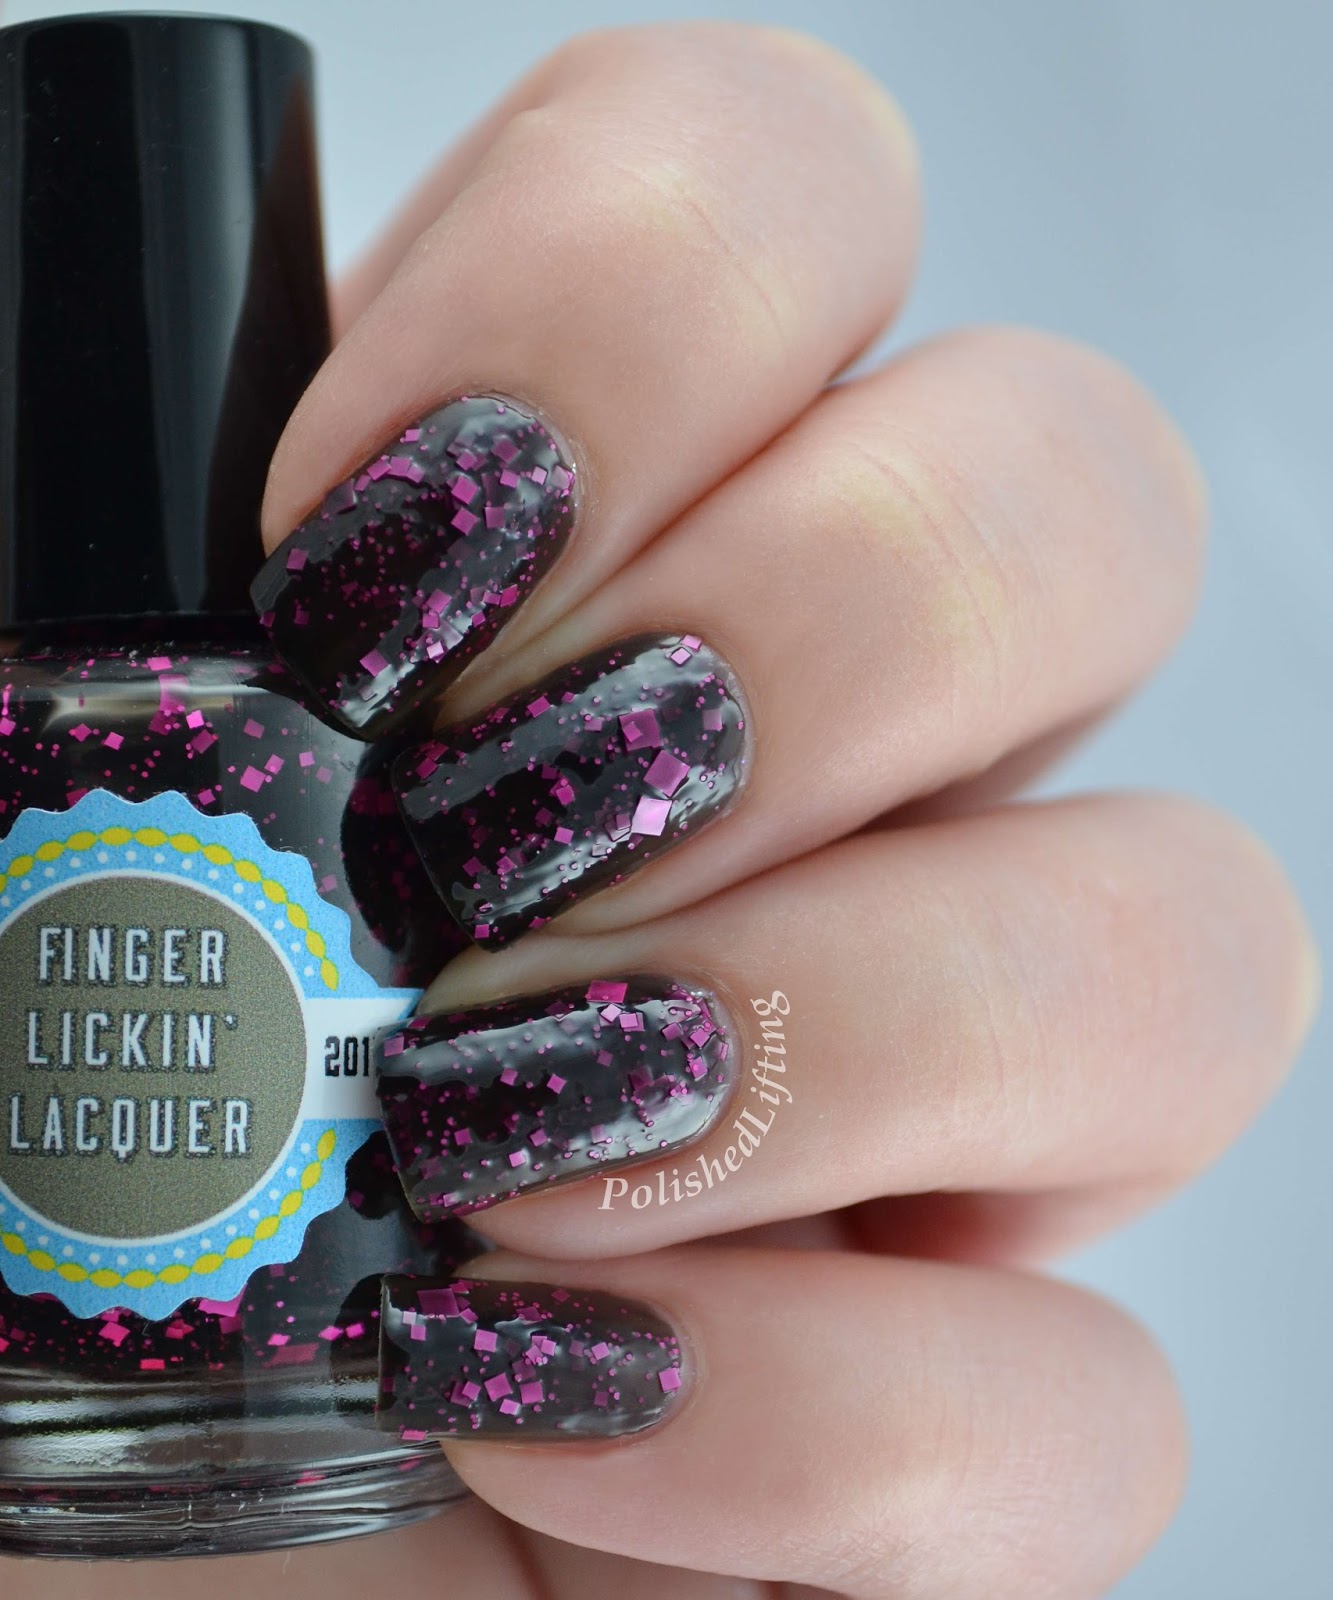 Finger Lickin' Lacquer Break Free